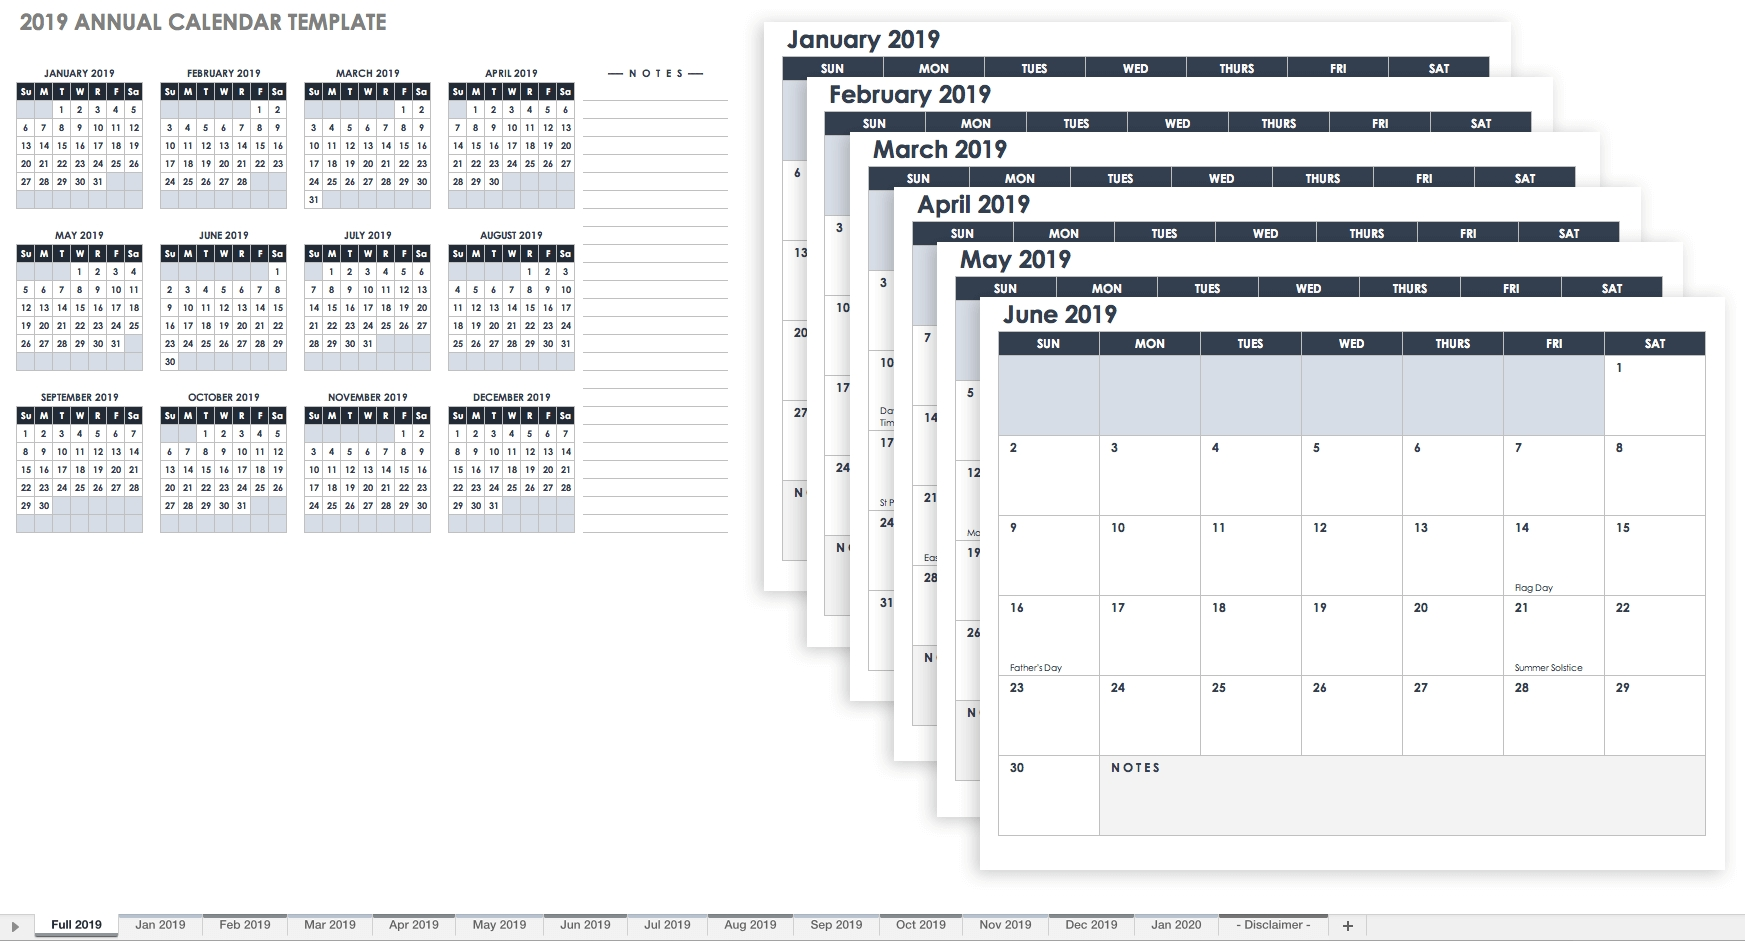 15 Free Monthly Calendar Templates | Smartsheet for Weekly Calendar With Yearly And Monthy Agenda